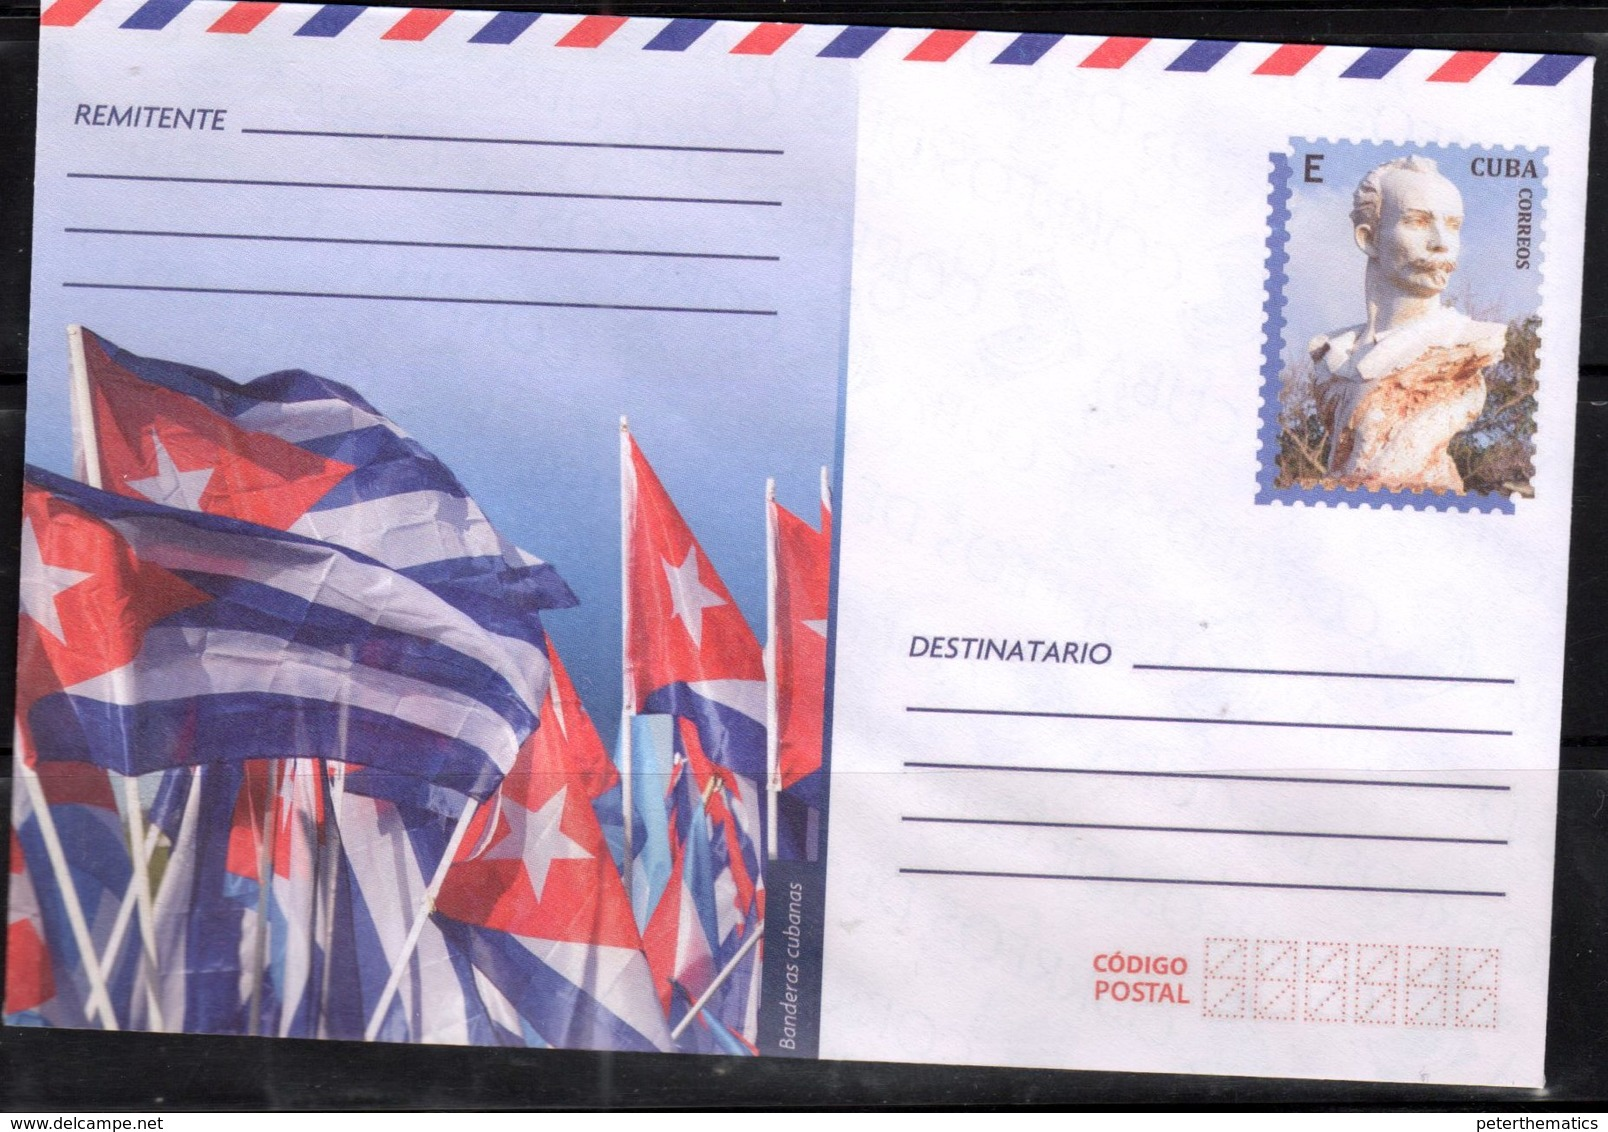 POSTAL STATIONERY, MINT, PREPAID ENVELOPE,FLAGS, STATUES - Covers